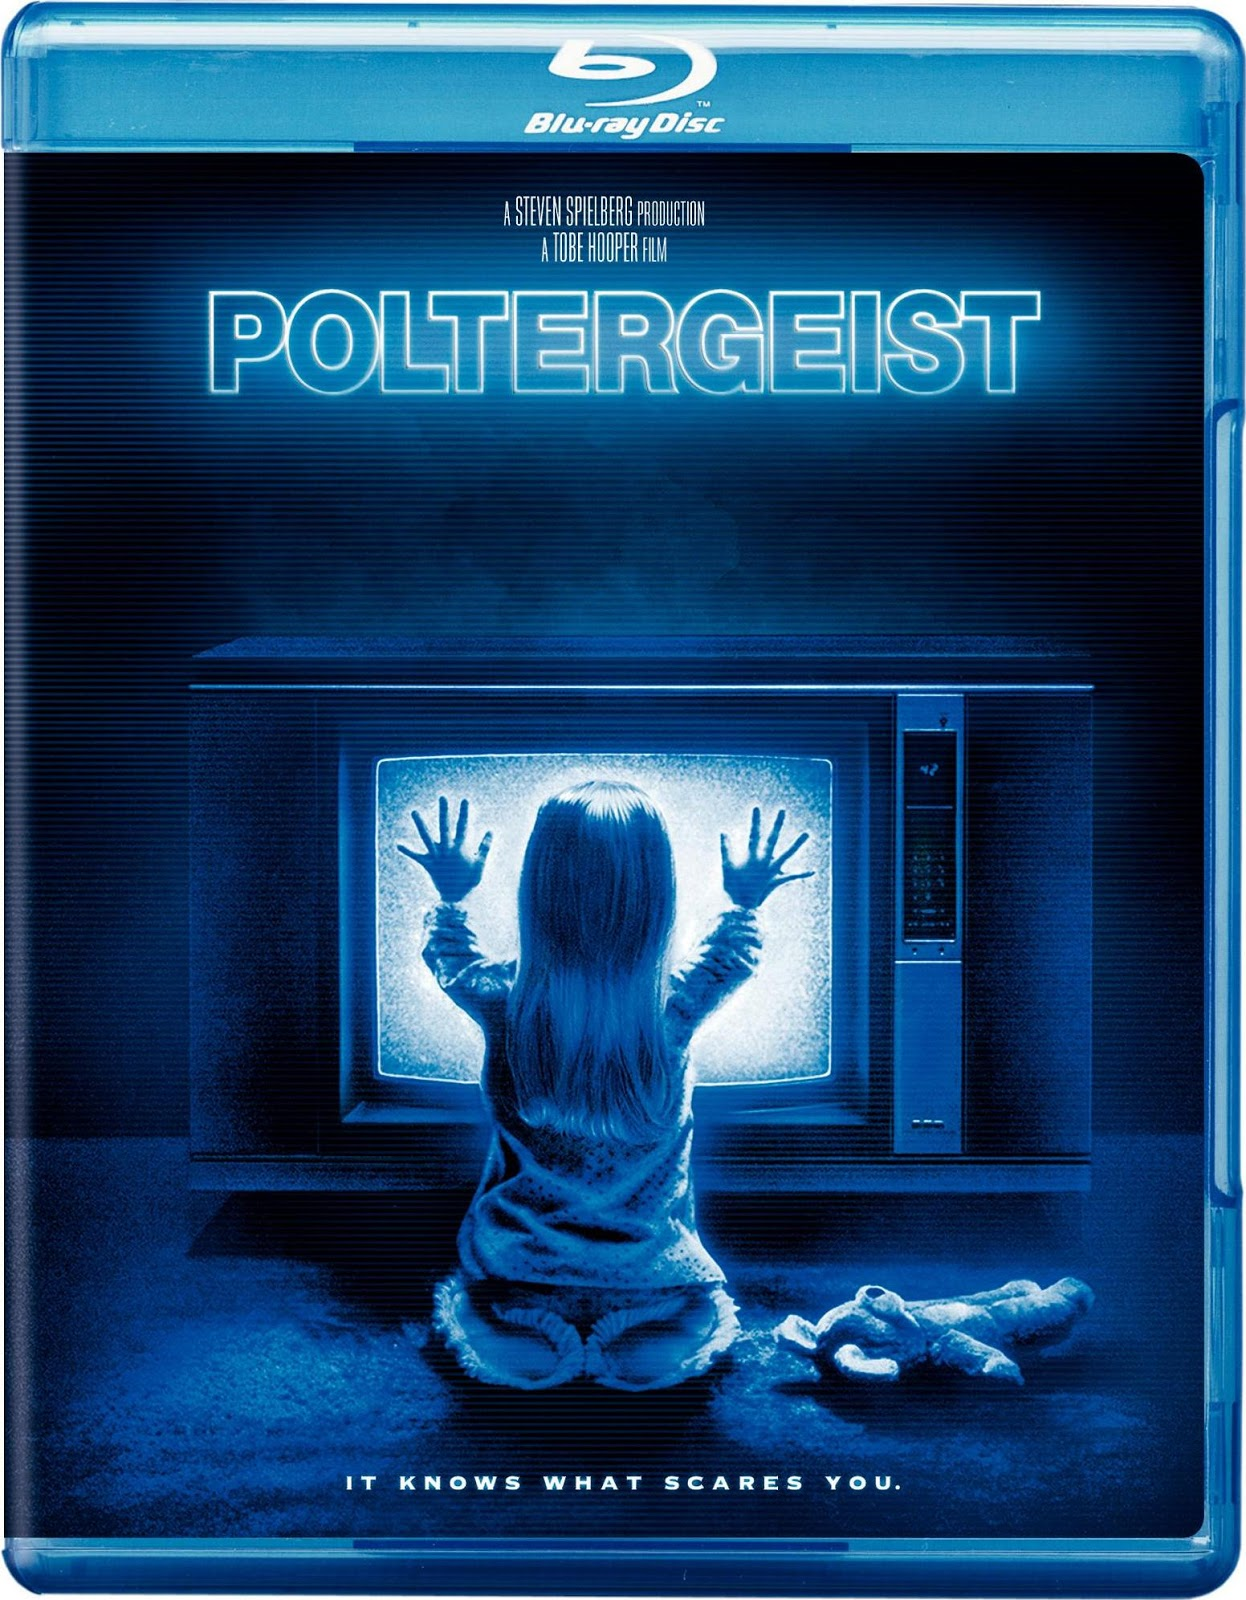 Poltergeist (2015) 1080p BD25 2D y 3D Blu-ray Cover Caratula